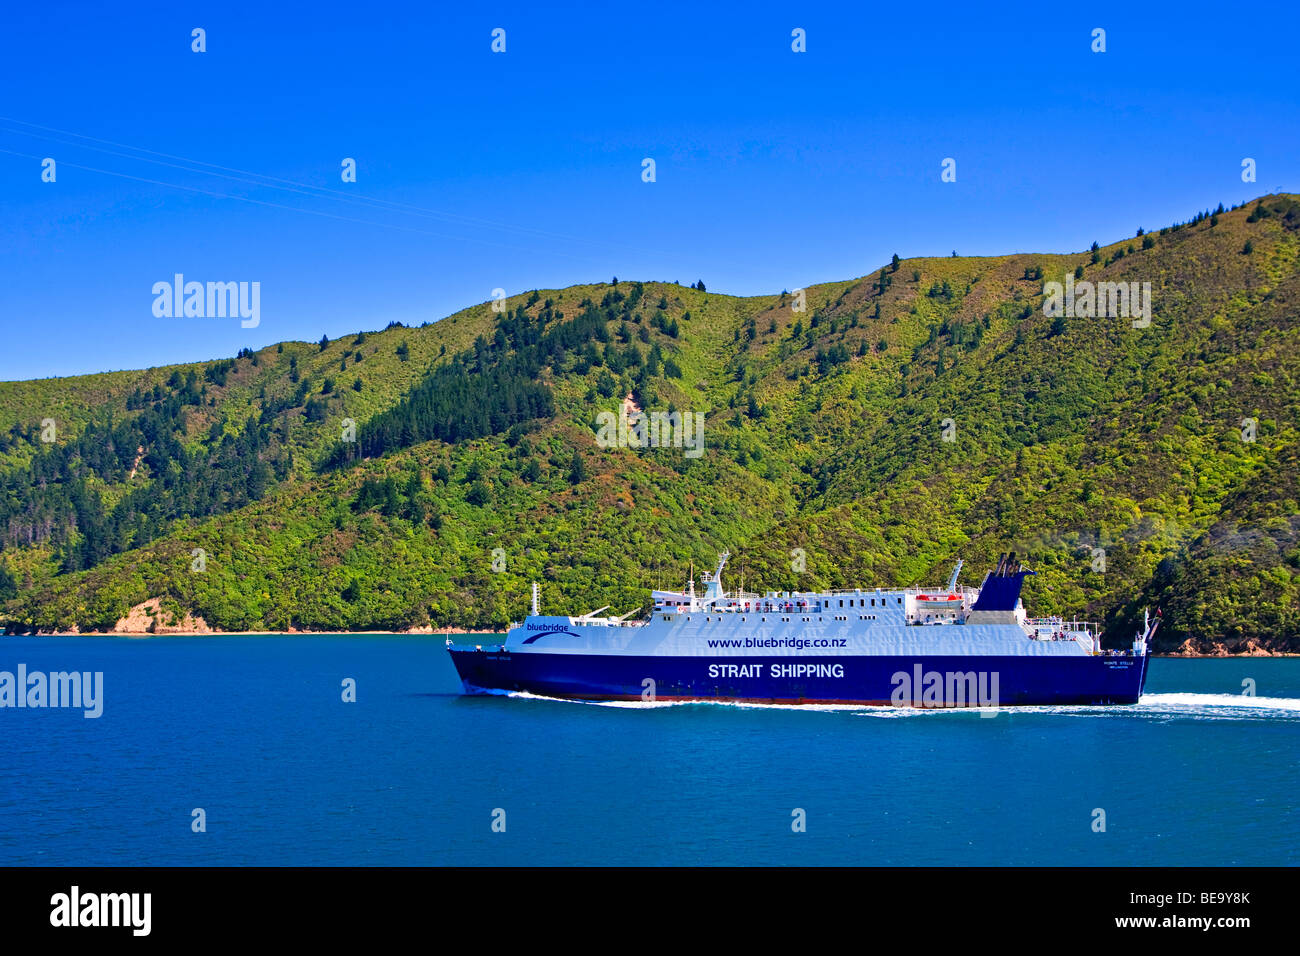 Bluebridge Ferry - Strait Shipping, Monte Stello, in the Tory Channel, Queen Charlotte Sounds, South Island, New - Stock Image